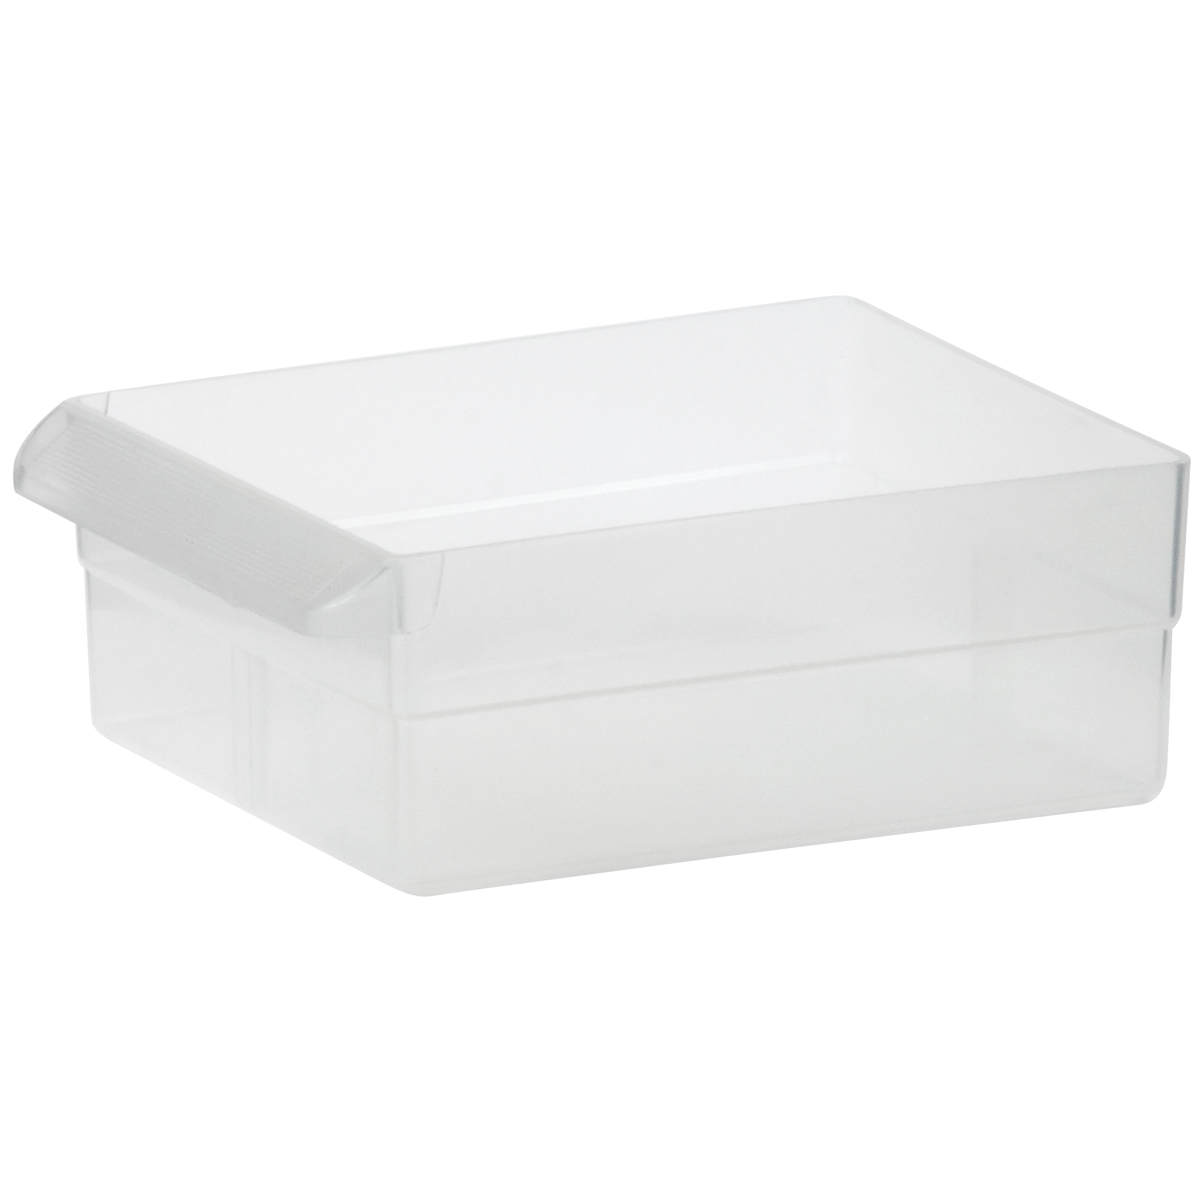 Item DISCONTINUED by Manufacturer.  10-Series Cabinet Large Drawer 6 x 4-1/2 x 2-3/16.  This item sold in carton quantities of 12.